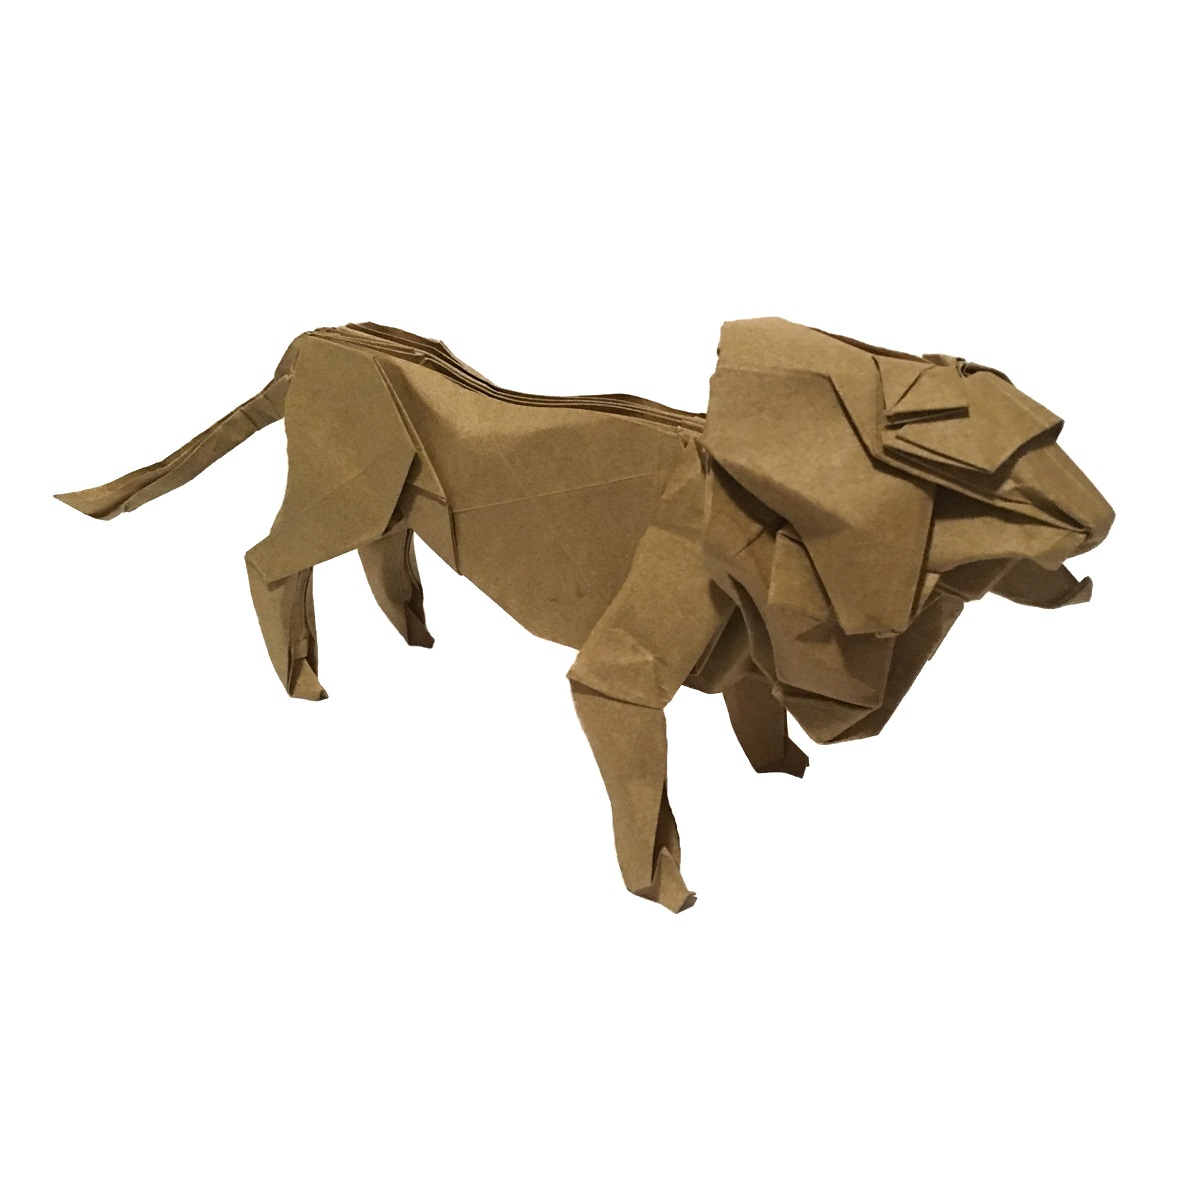 Seth Friedmans Lion The Origami King Origamiexpressions